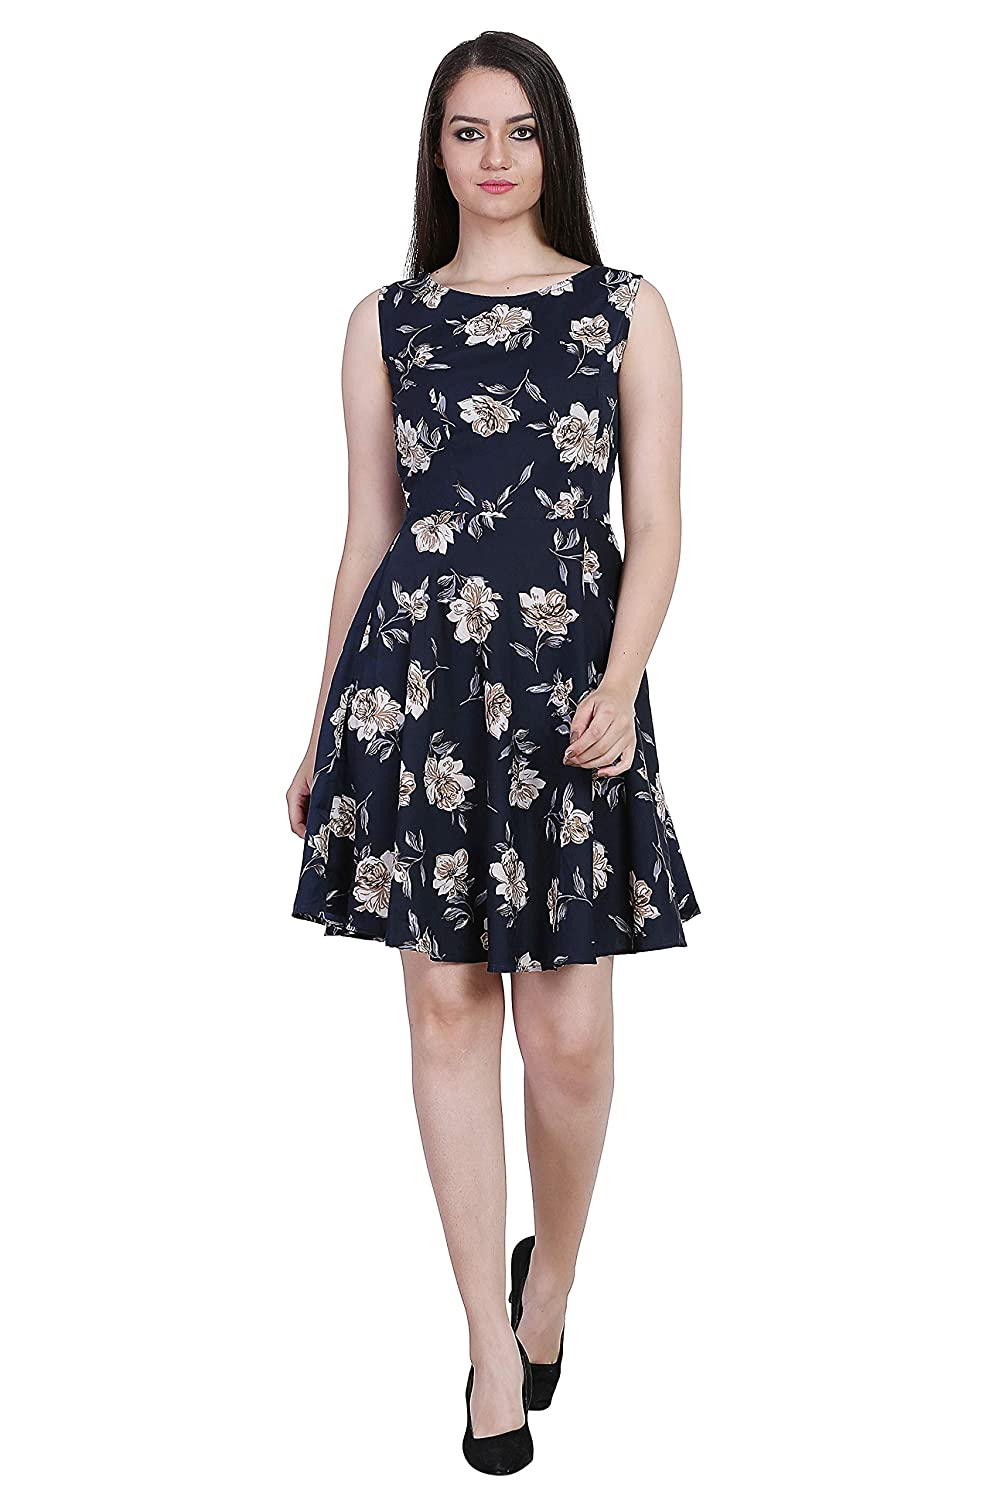 Buy Online Shopping Mall Stylish Printed Crepe A Line Midi Dress For Women S Girl S Size S M L Xl At Amazon In